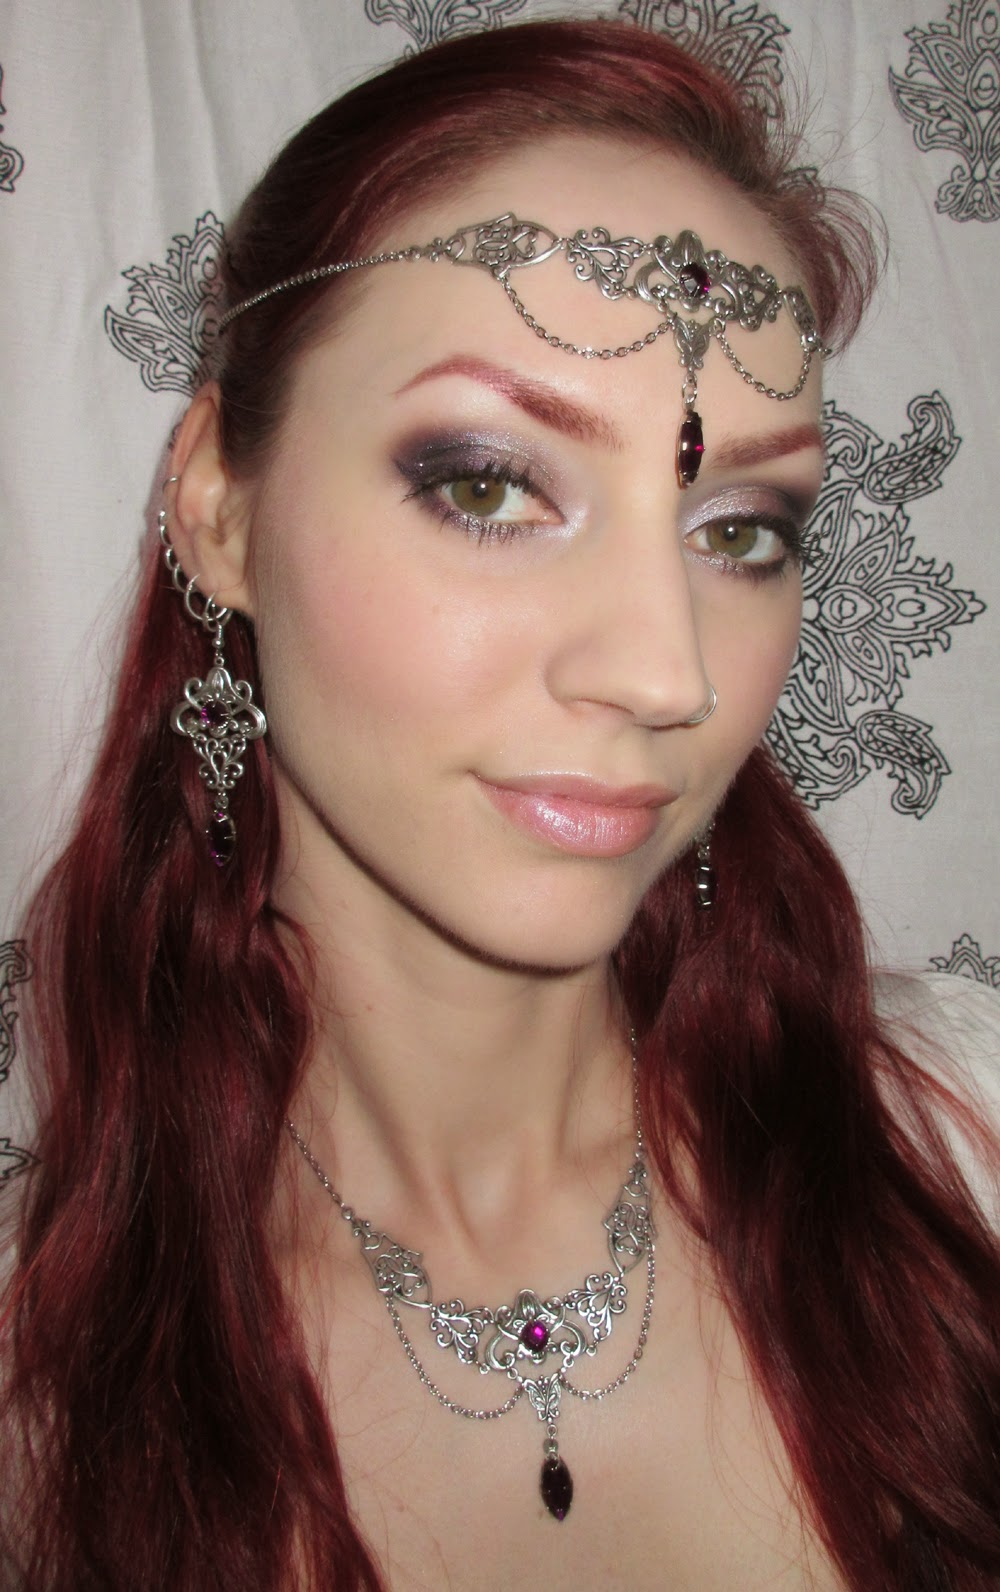 http://themoonmaiden-blix.blogspot.com/2015/03/nuetral-plum-eye-makeup-look.html